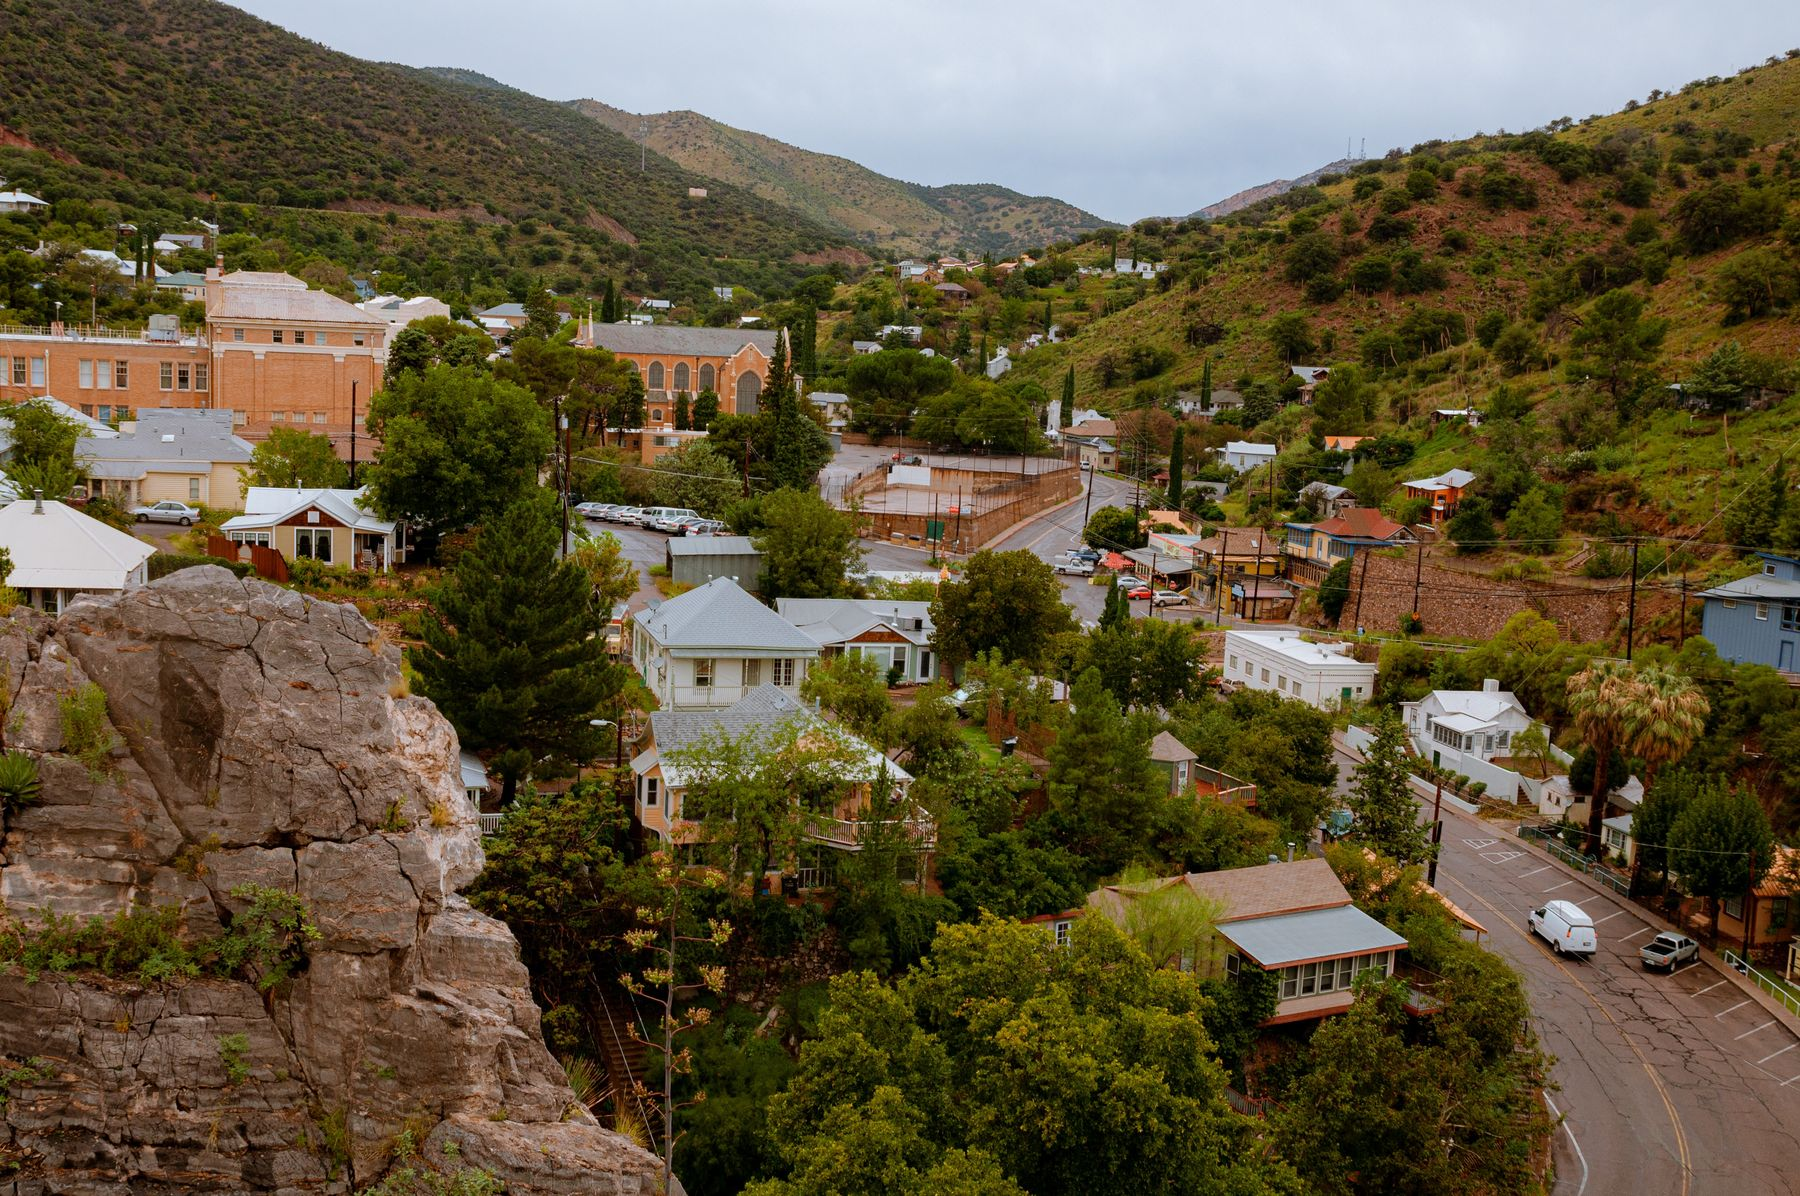 Hilltop view of building and streets in small town Bisbee, Arizona